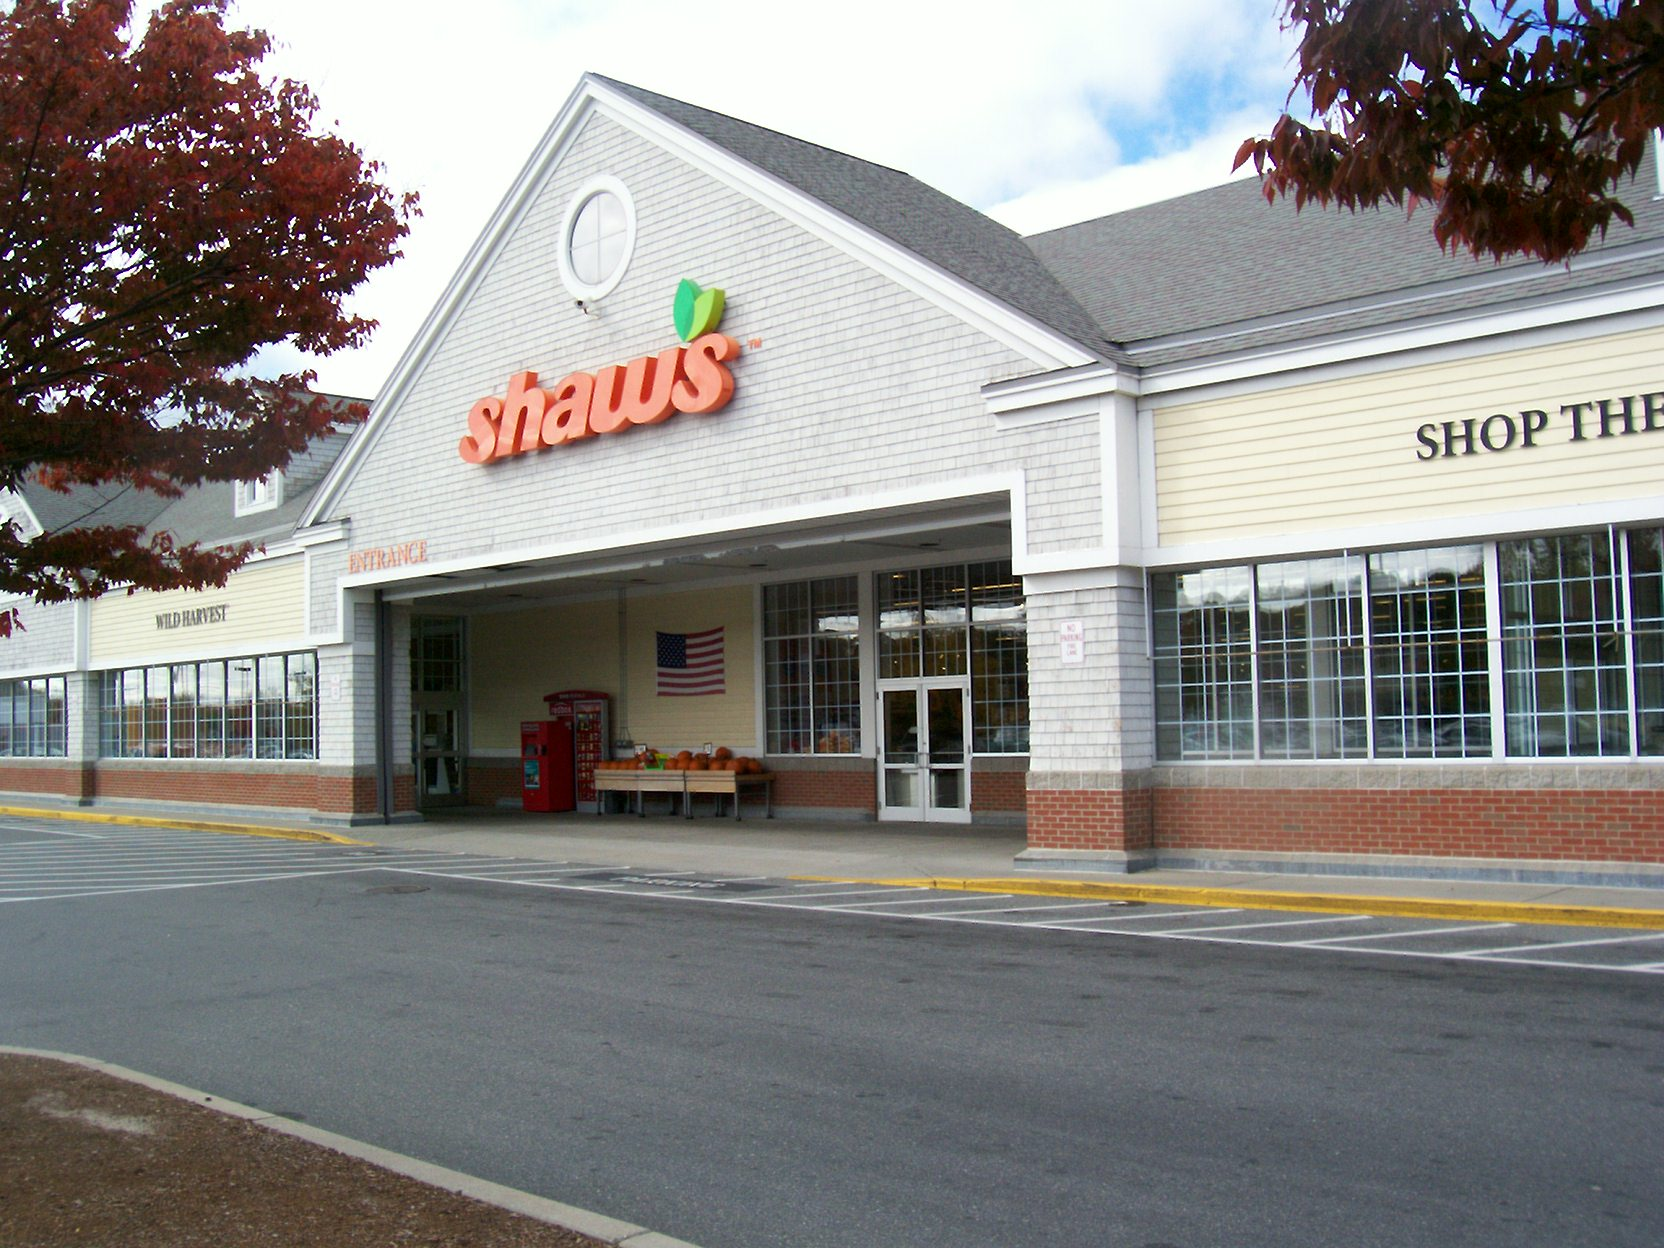 Shaw's Store Front Picture at 1108 State Rd in South Yarmouth MA